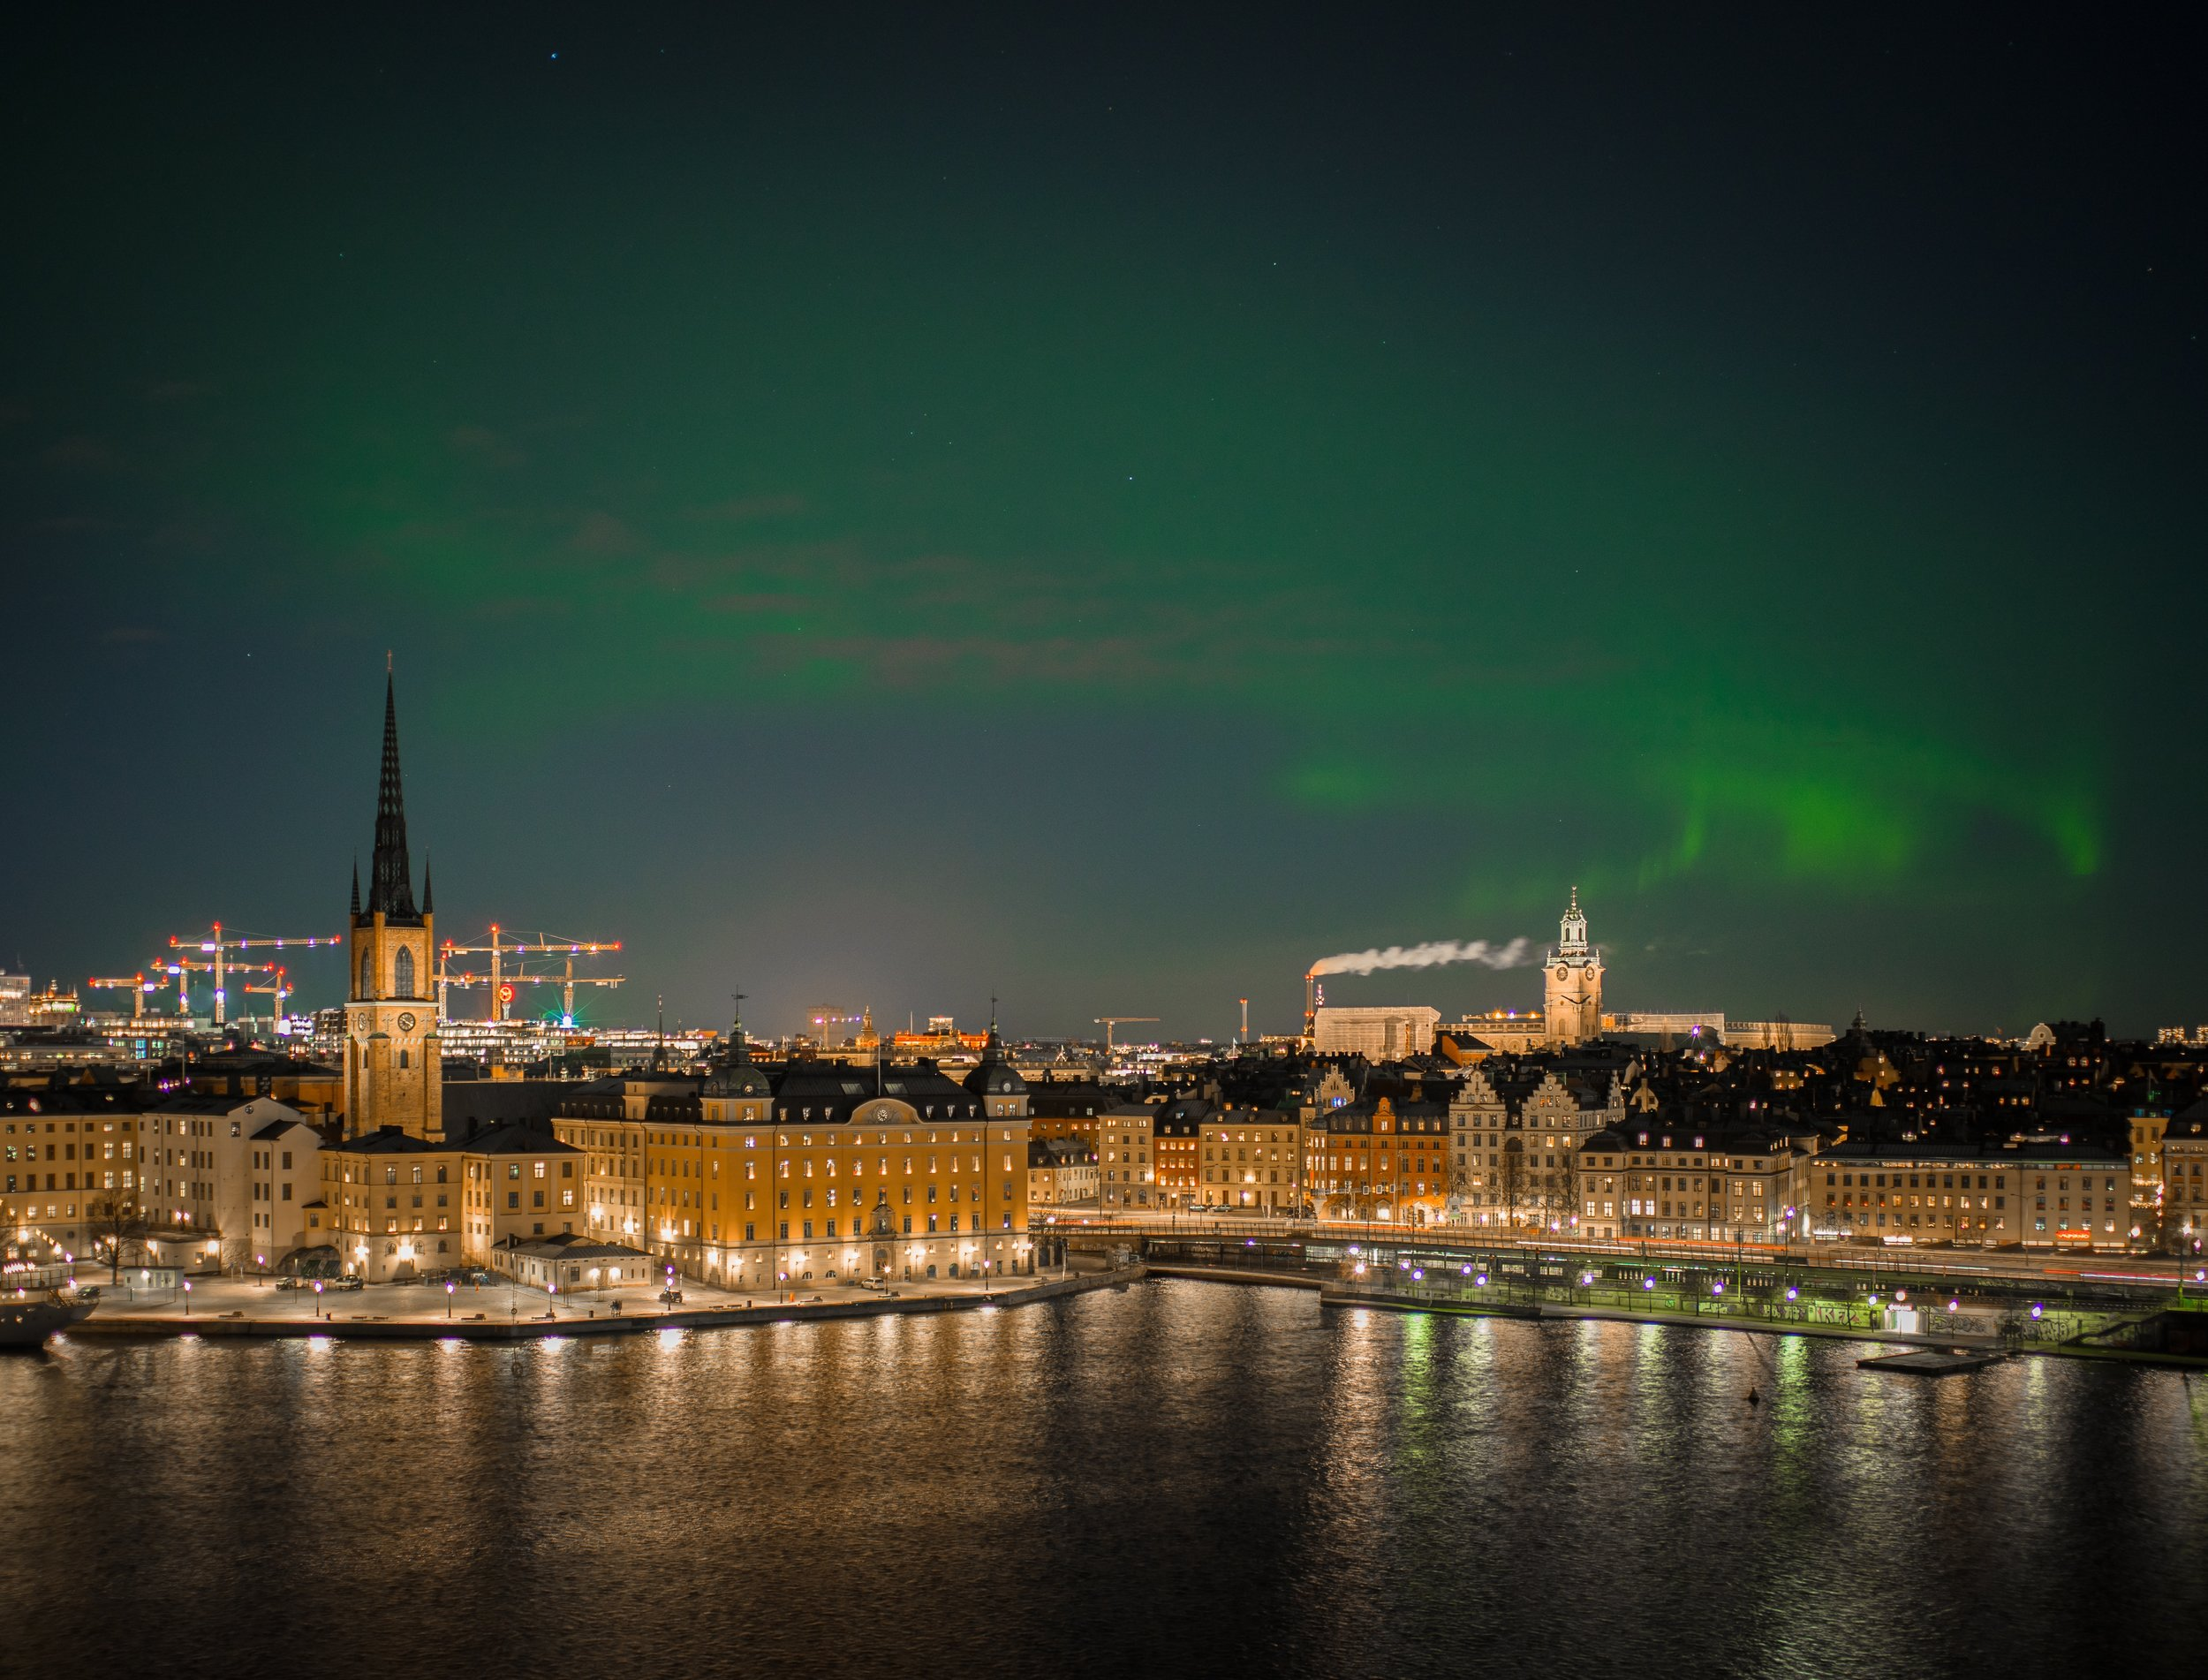 Northern Lights over Stockholm - it happens but you shouldn't visit in the hope of catching them!  Photo by Micael Widell